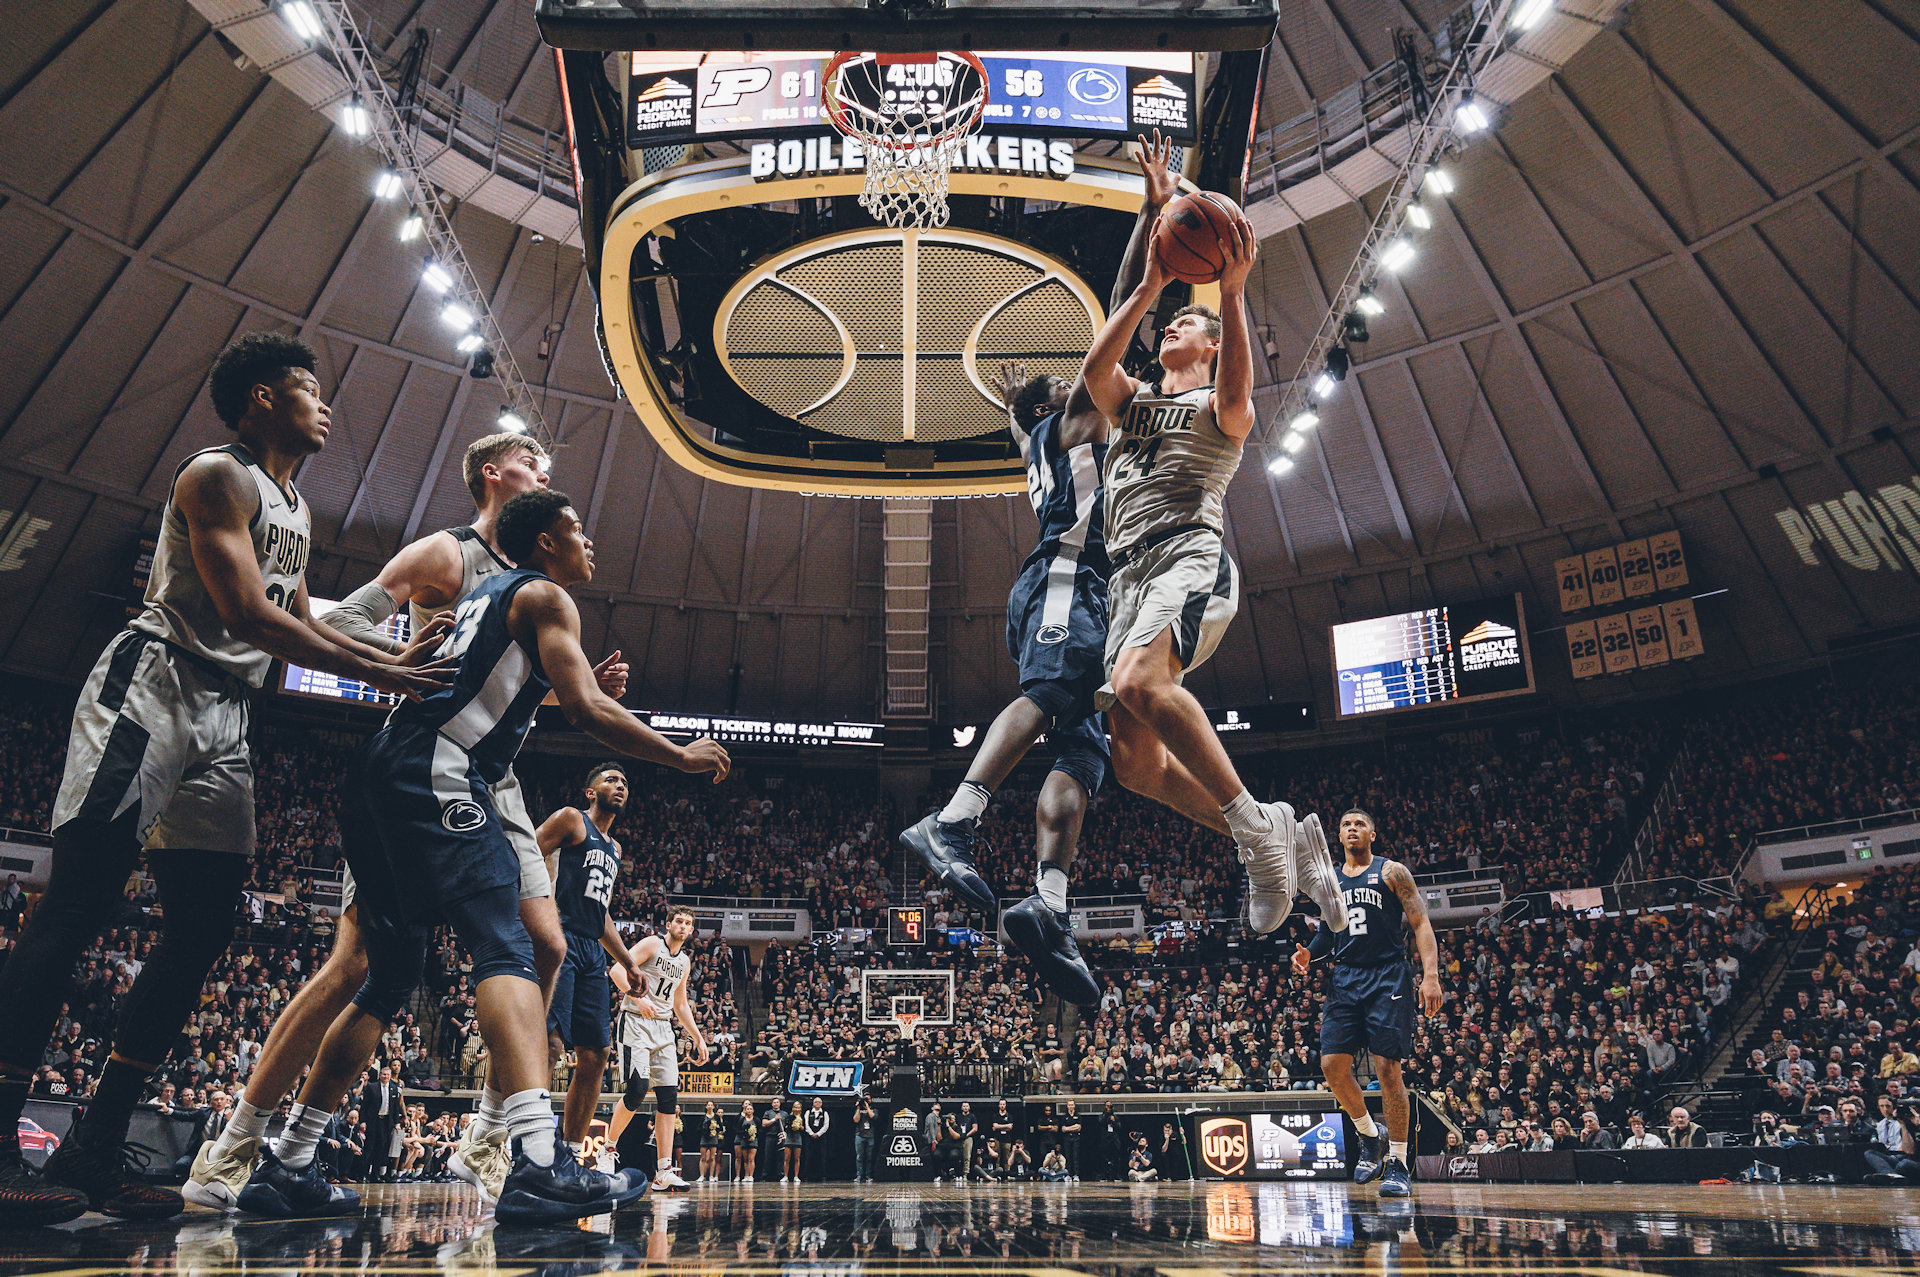 Eifert attacks Stevens, who had 4 fouls at the time, and hits this layup to stop a 12-0 PSU run. Stevens would foul out on the next possession.